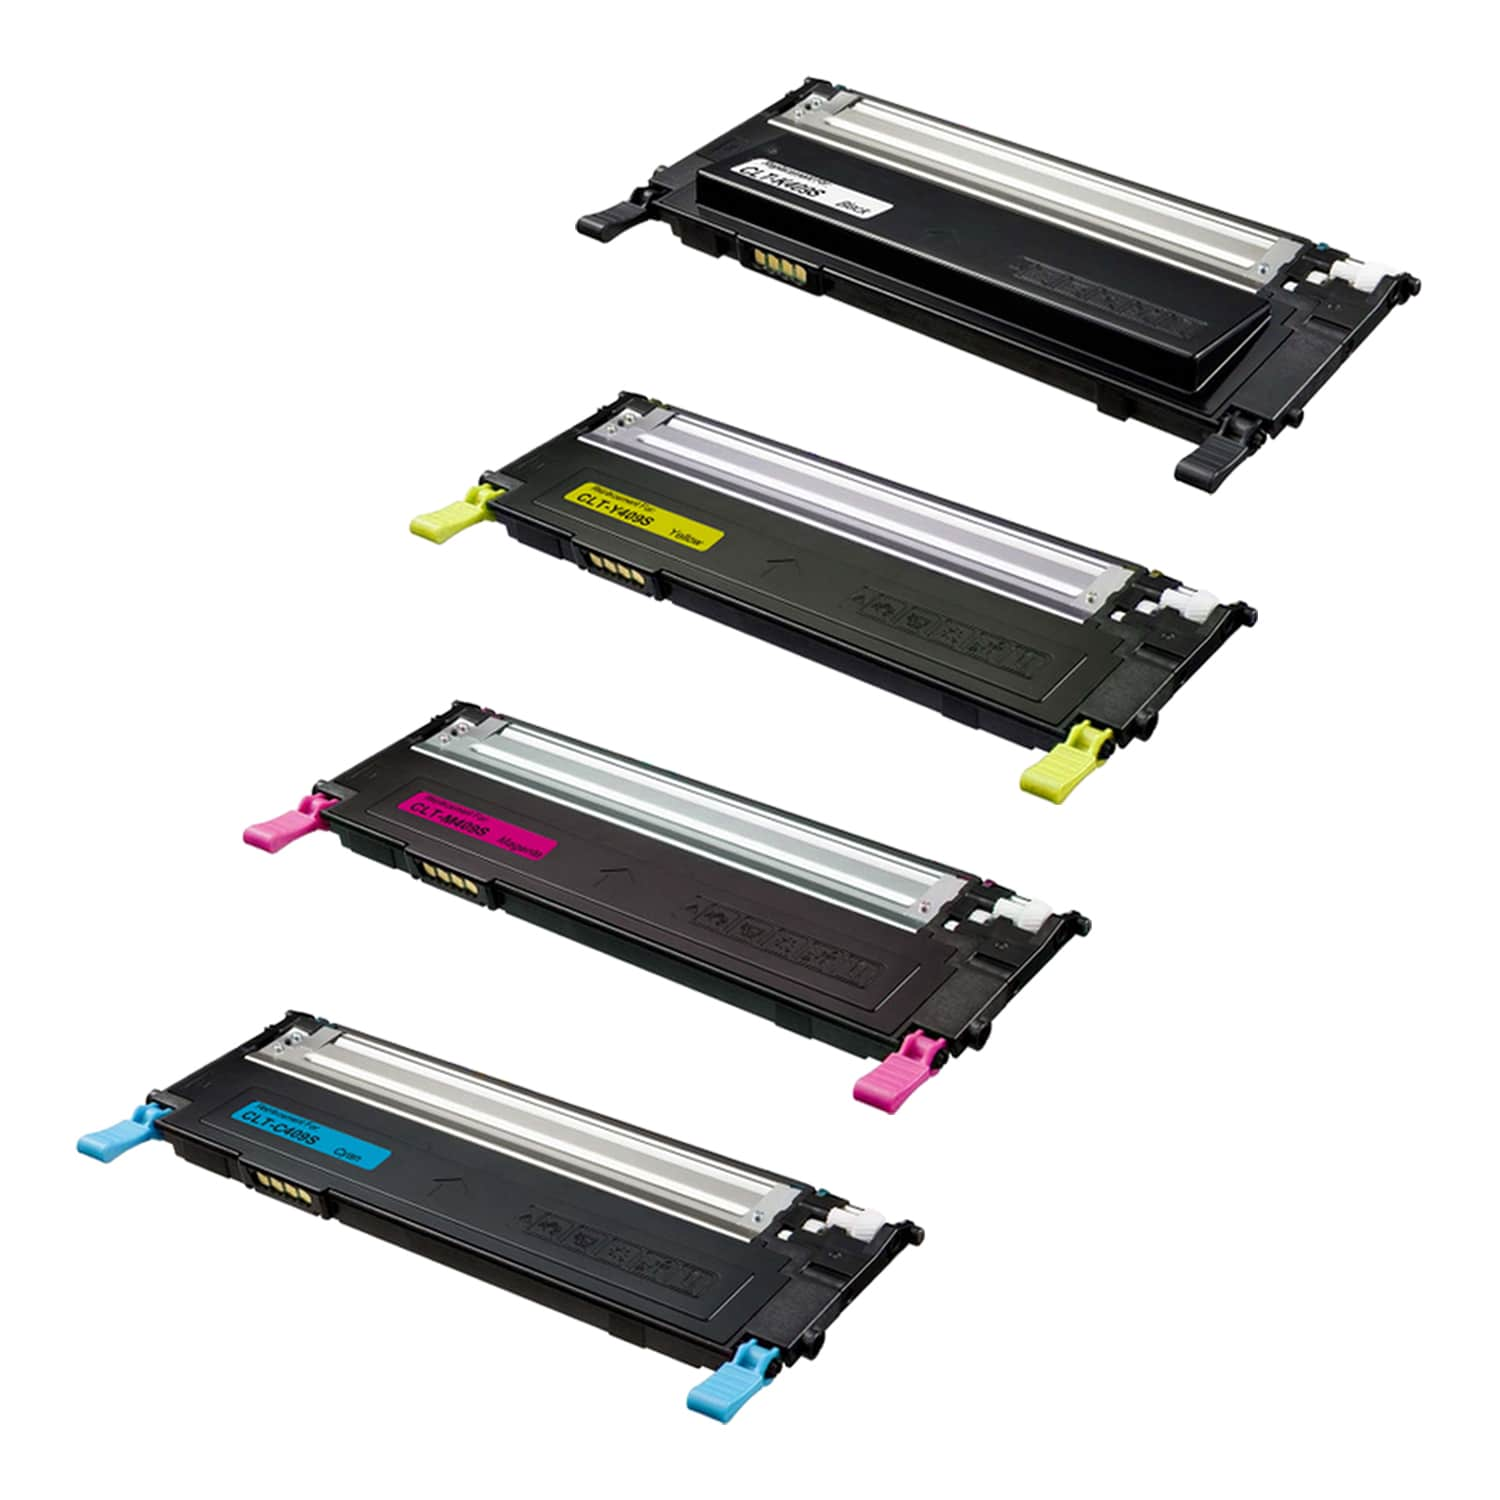 Remanufactured Samsung 409S Toner Pack - 4 Cartridges